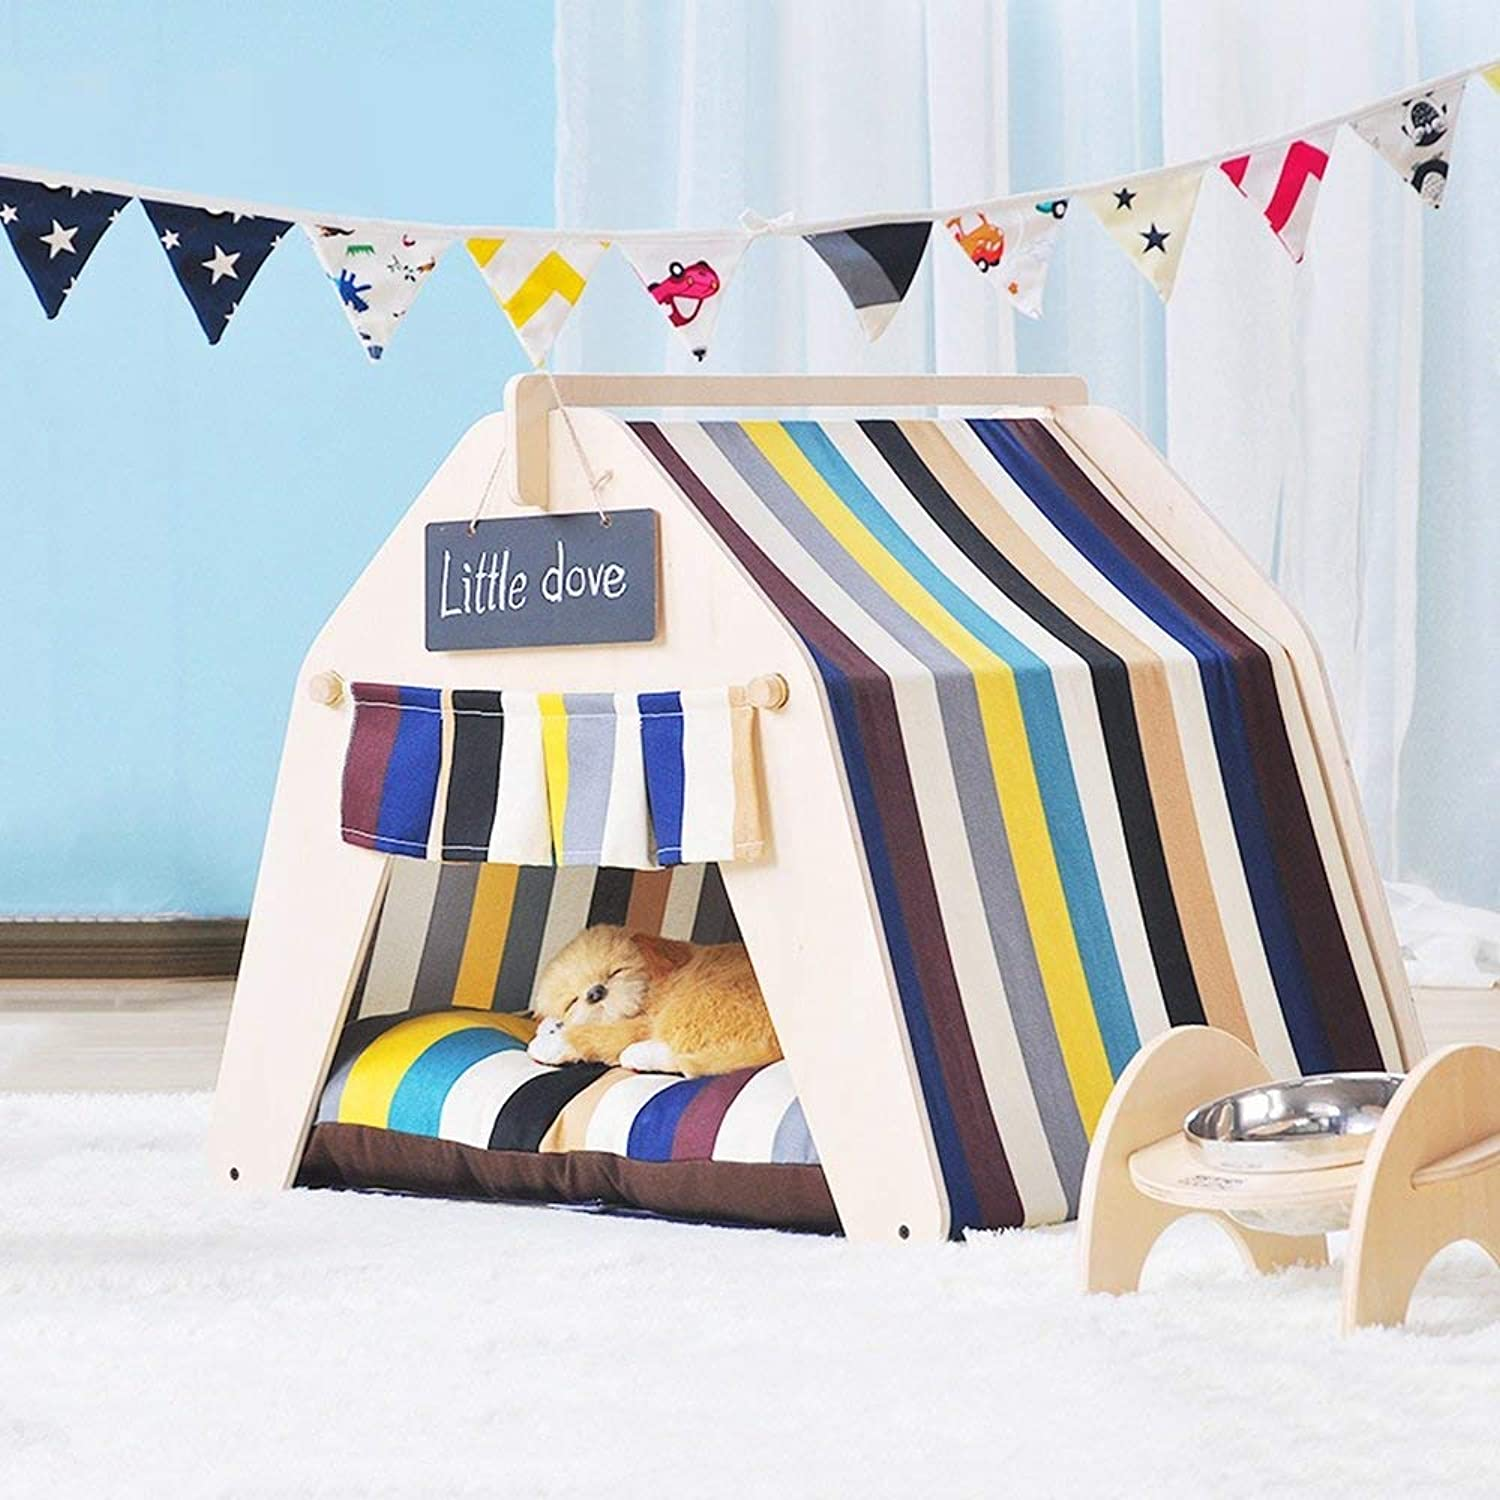 HeiPlaine Pet Sofa Pet Tent Cute Beautiful Pet Bed Small Dog Pet House Removable And Washable Pet Supplies Autumn And Winter Thick Mat (color   02, Size   Large)